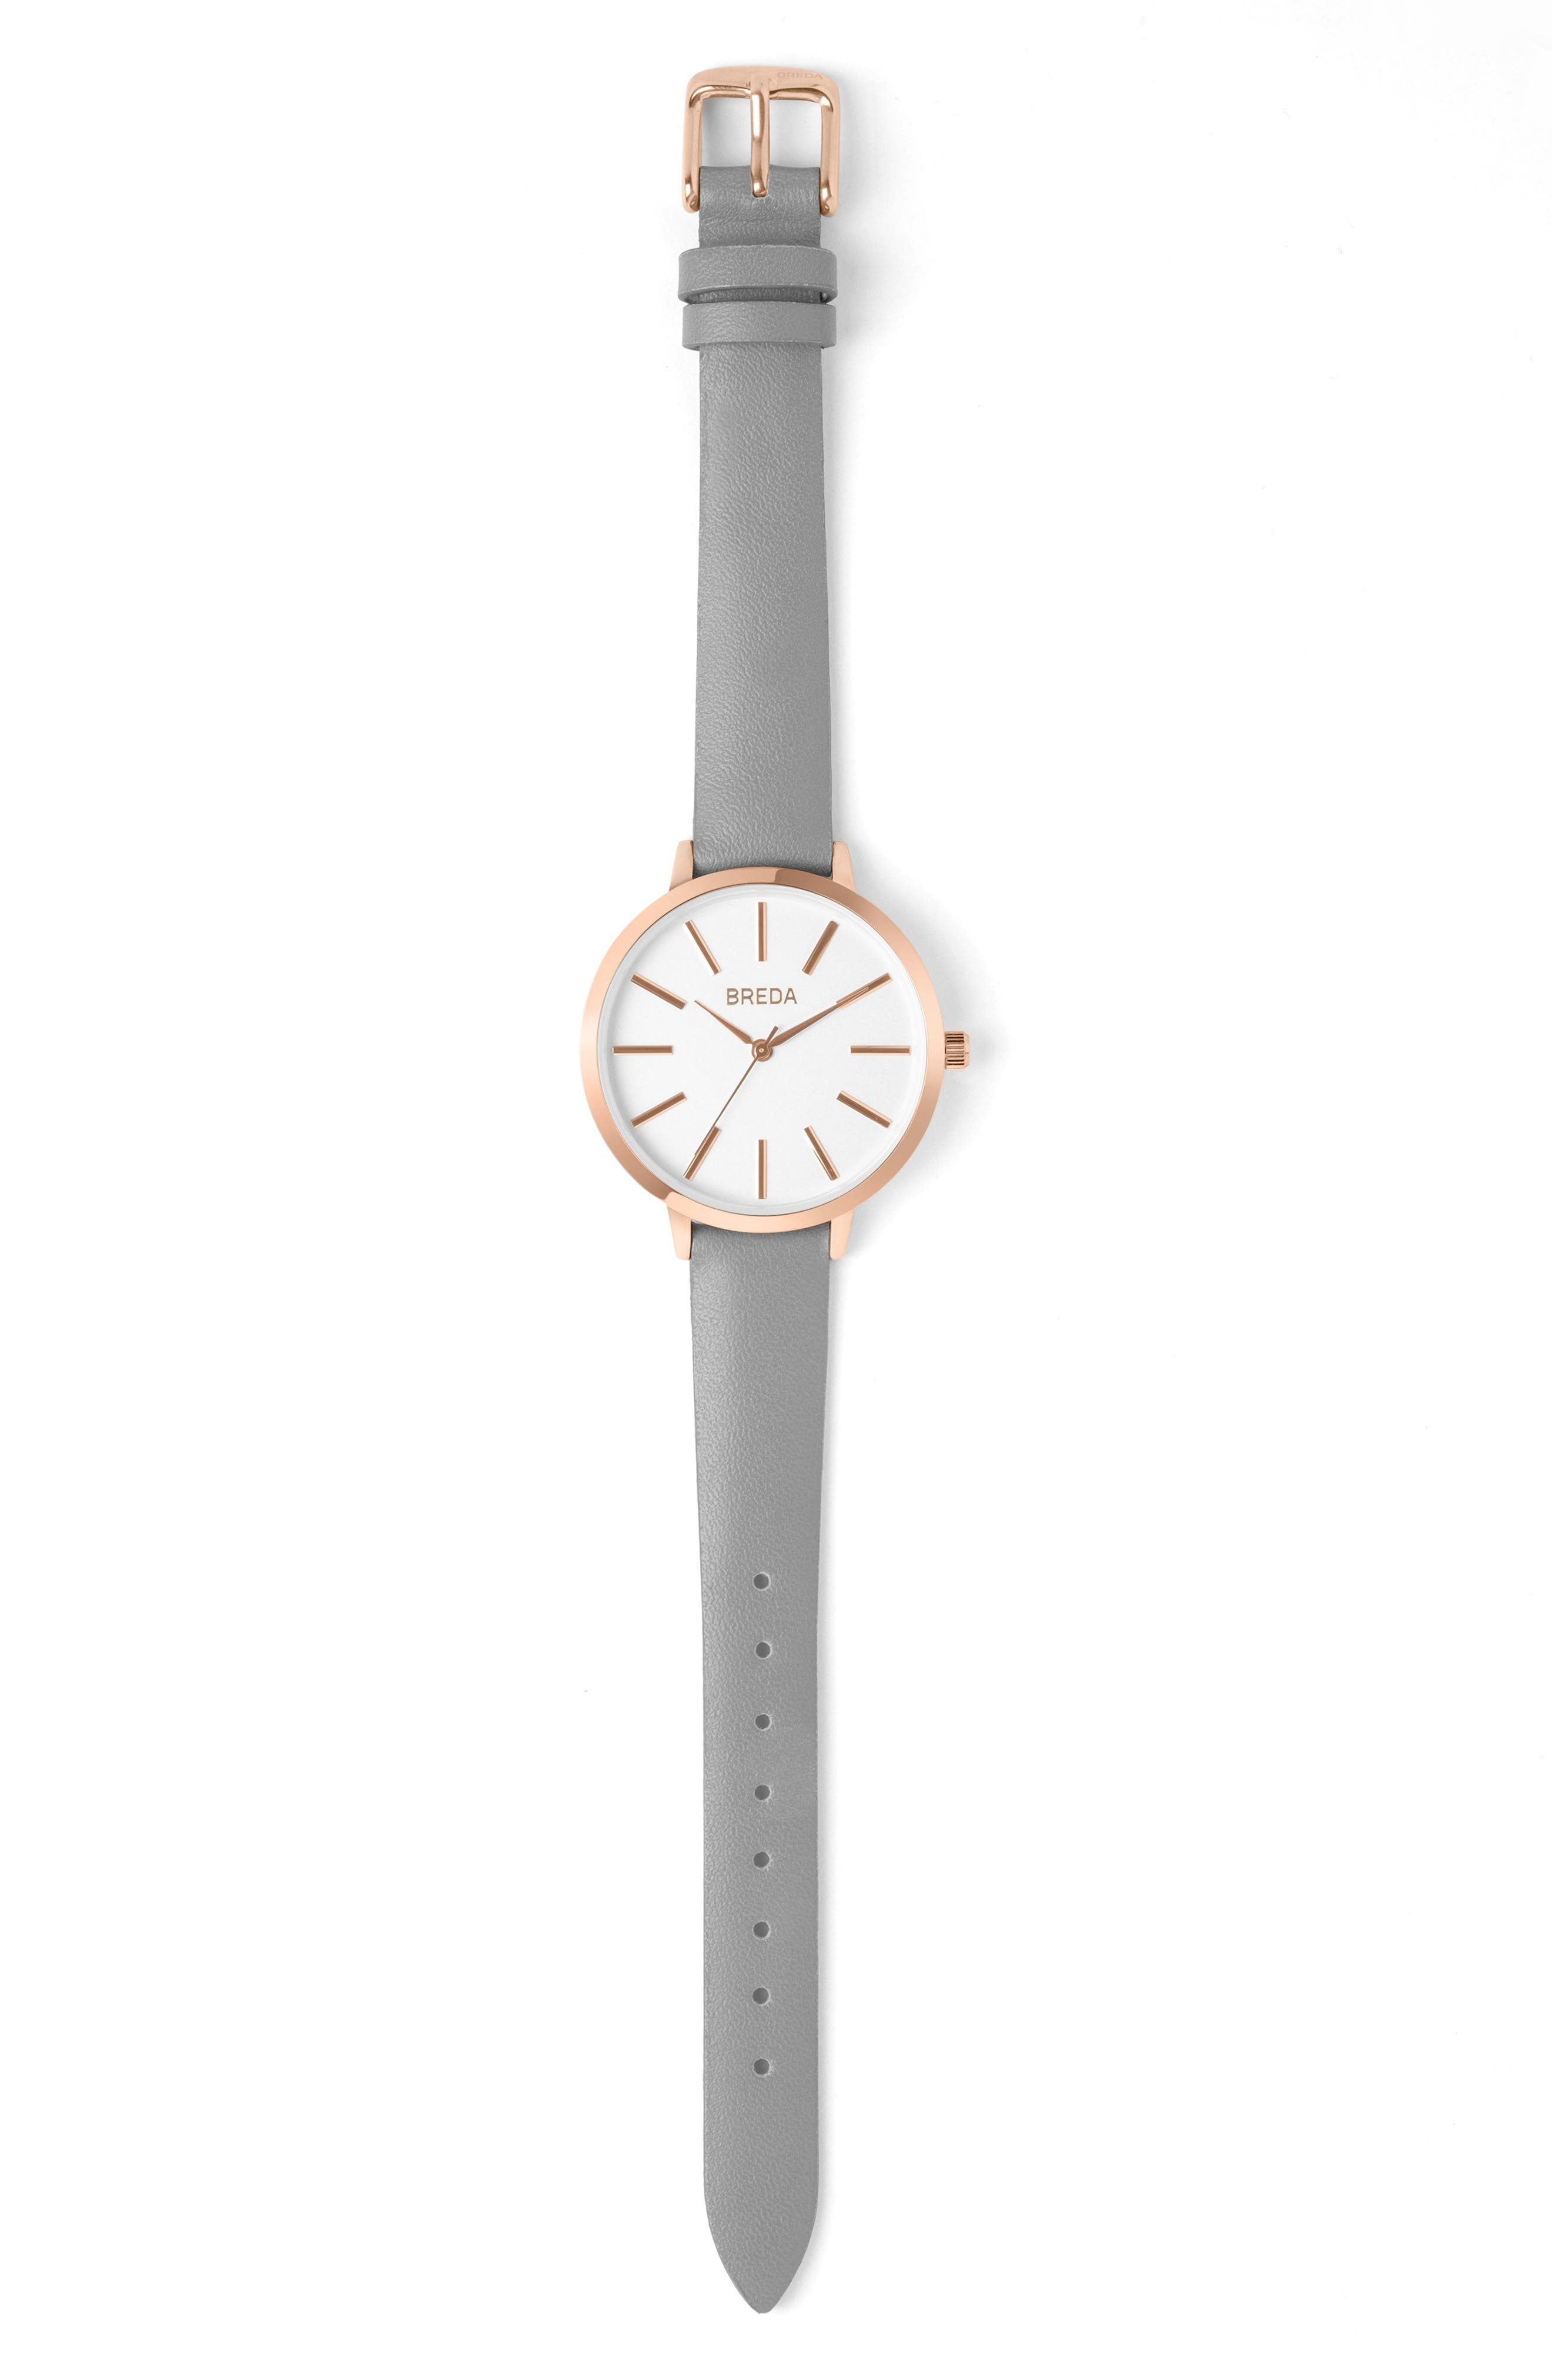 Joule Round Leather Strap Watch, 37mm,                         Main,                         color, GREY/ WHITE/ ROSE GOLD